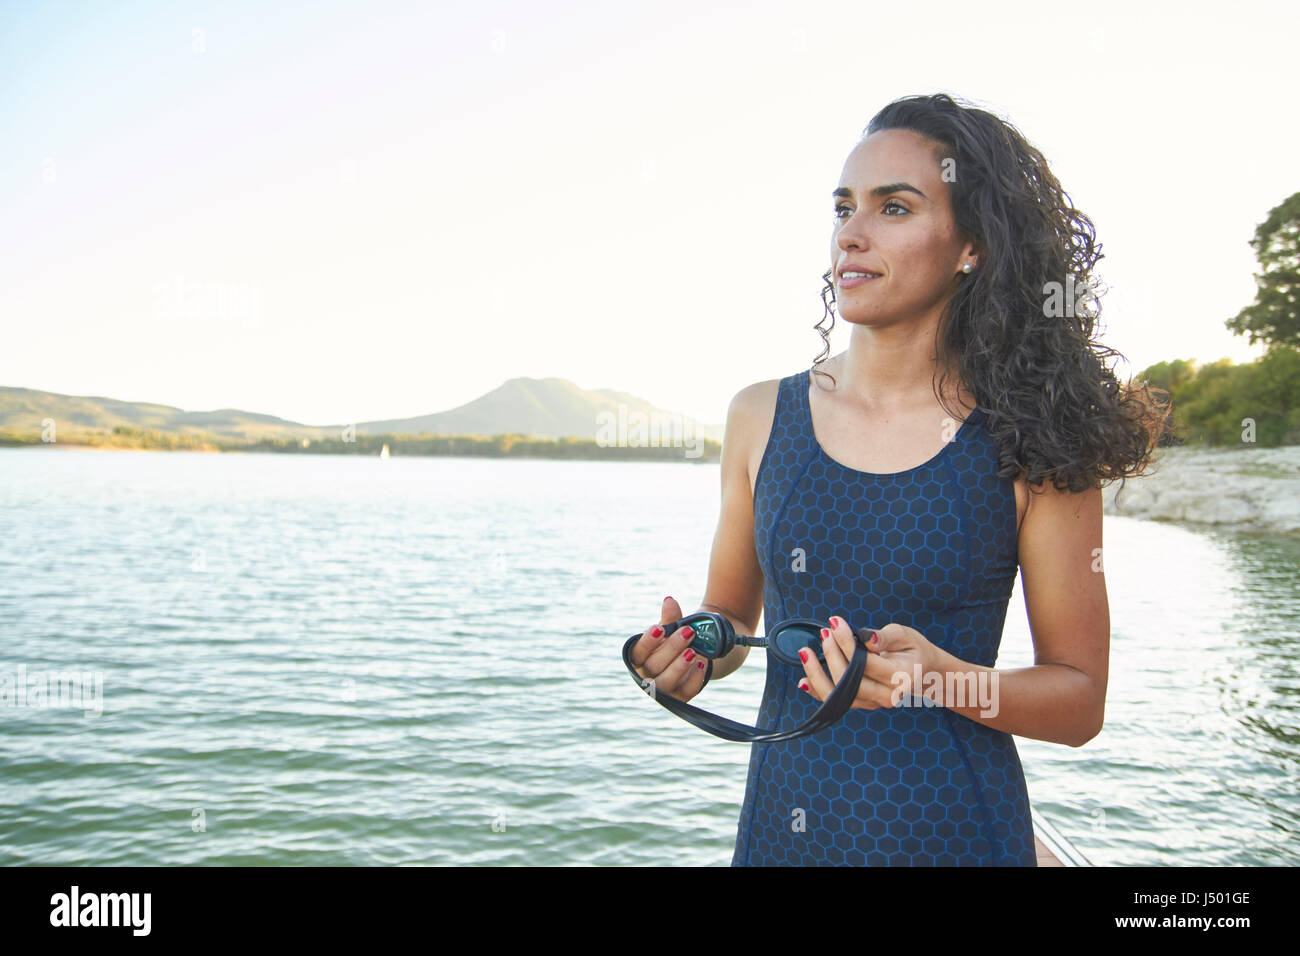 Female Triathlete at the edge of a lake - Stock Image